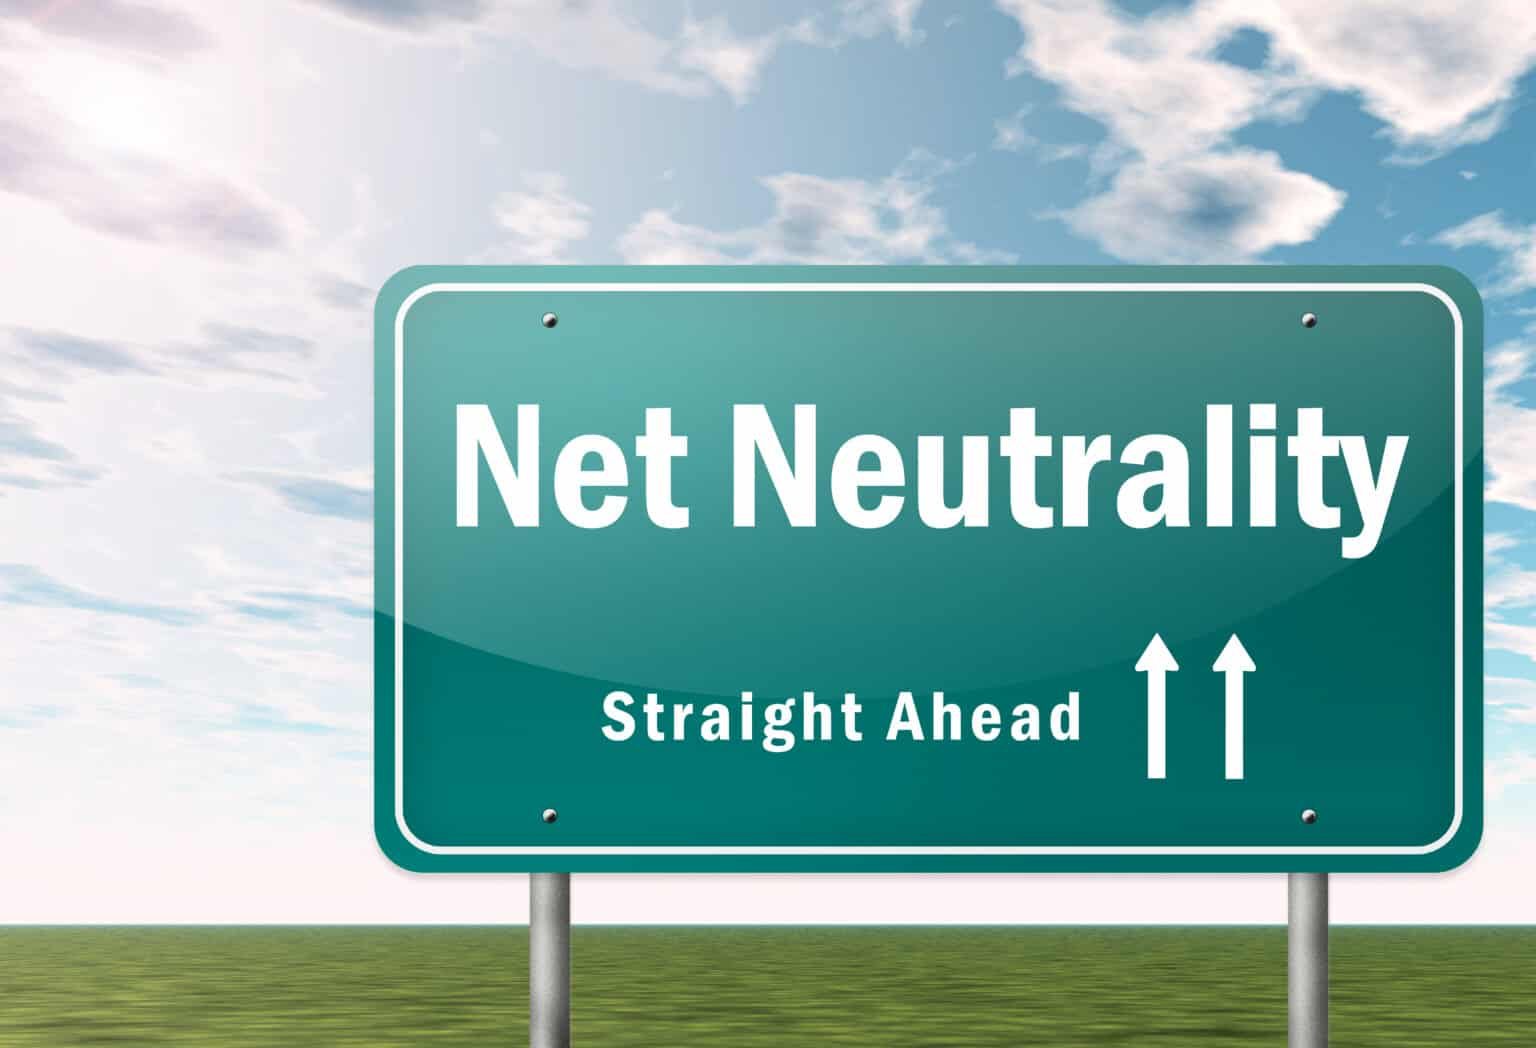 Highway Signpost with Net Neutrality wording